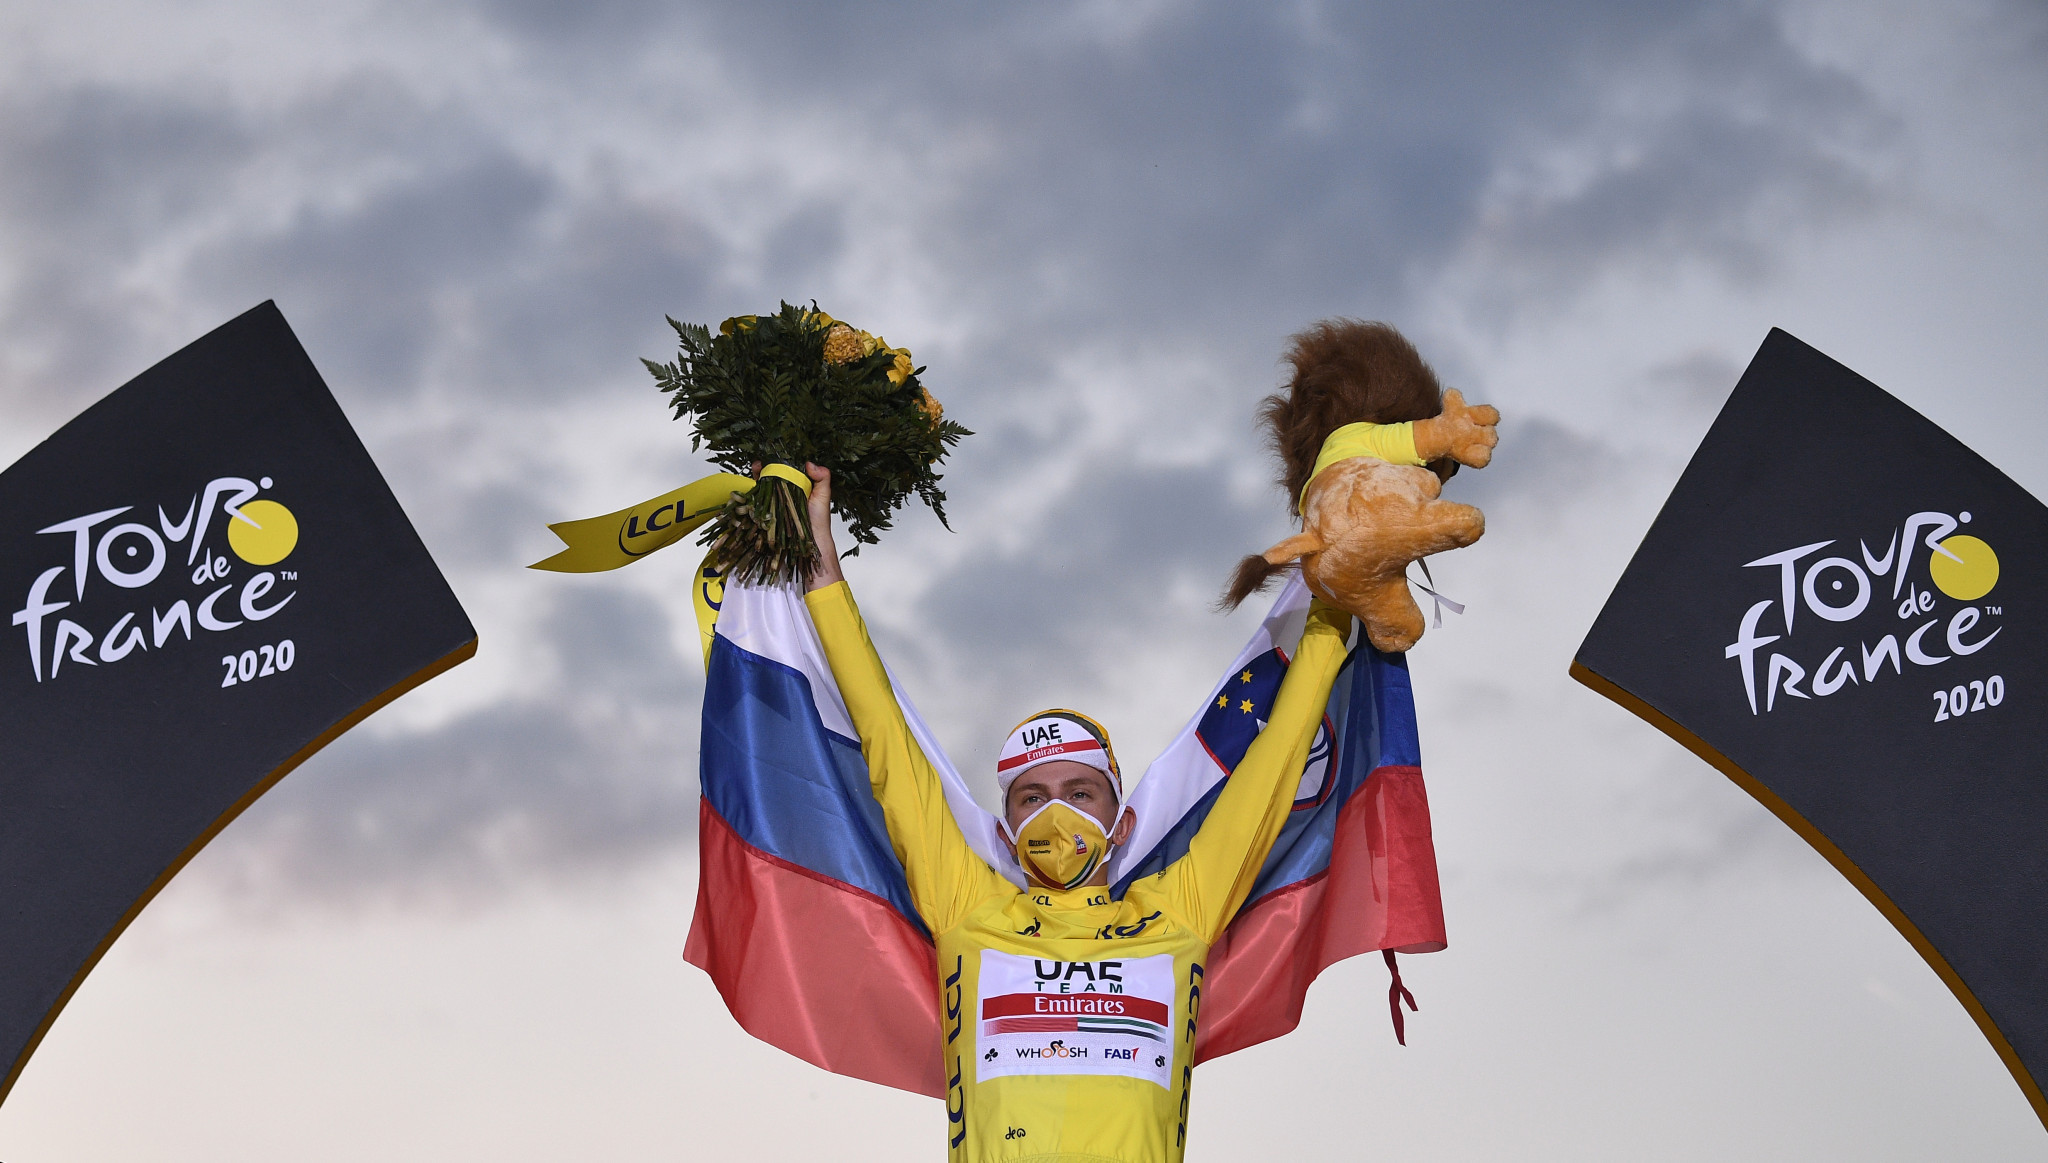 An inspired final time trial performance allowed Slovenia's Tadej Pogačar to earn an unexpected triumph in this year's Tour de France as he became the event's youngest winner since 1904 ©Getty Images